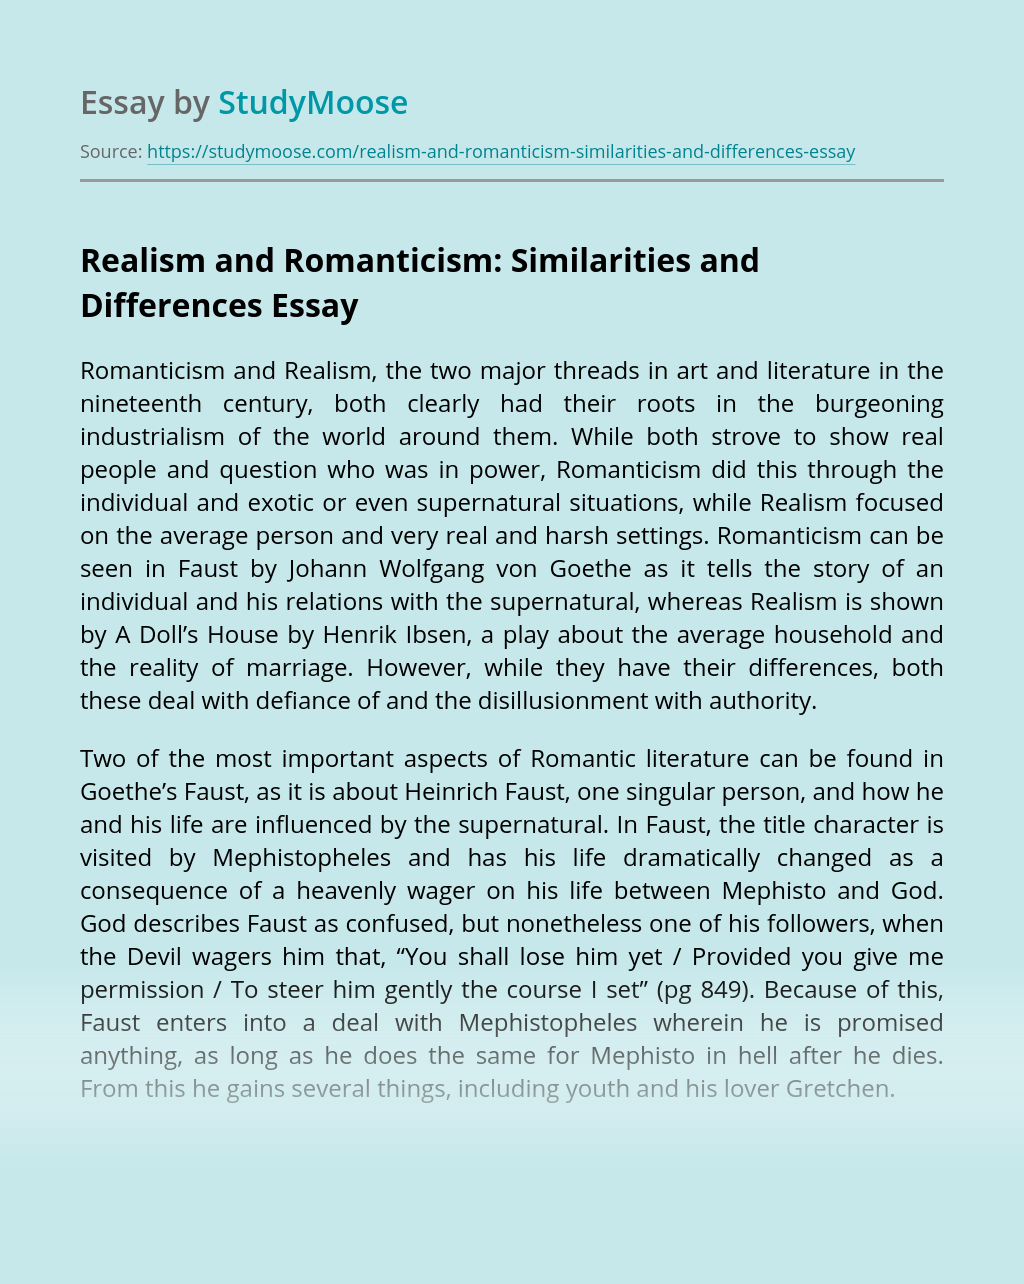 Realism and Romanticism: Similarities and Differences